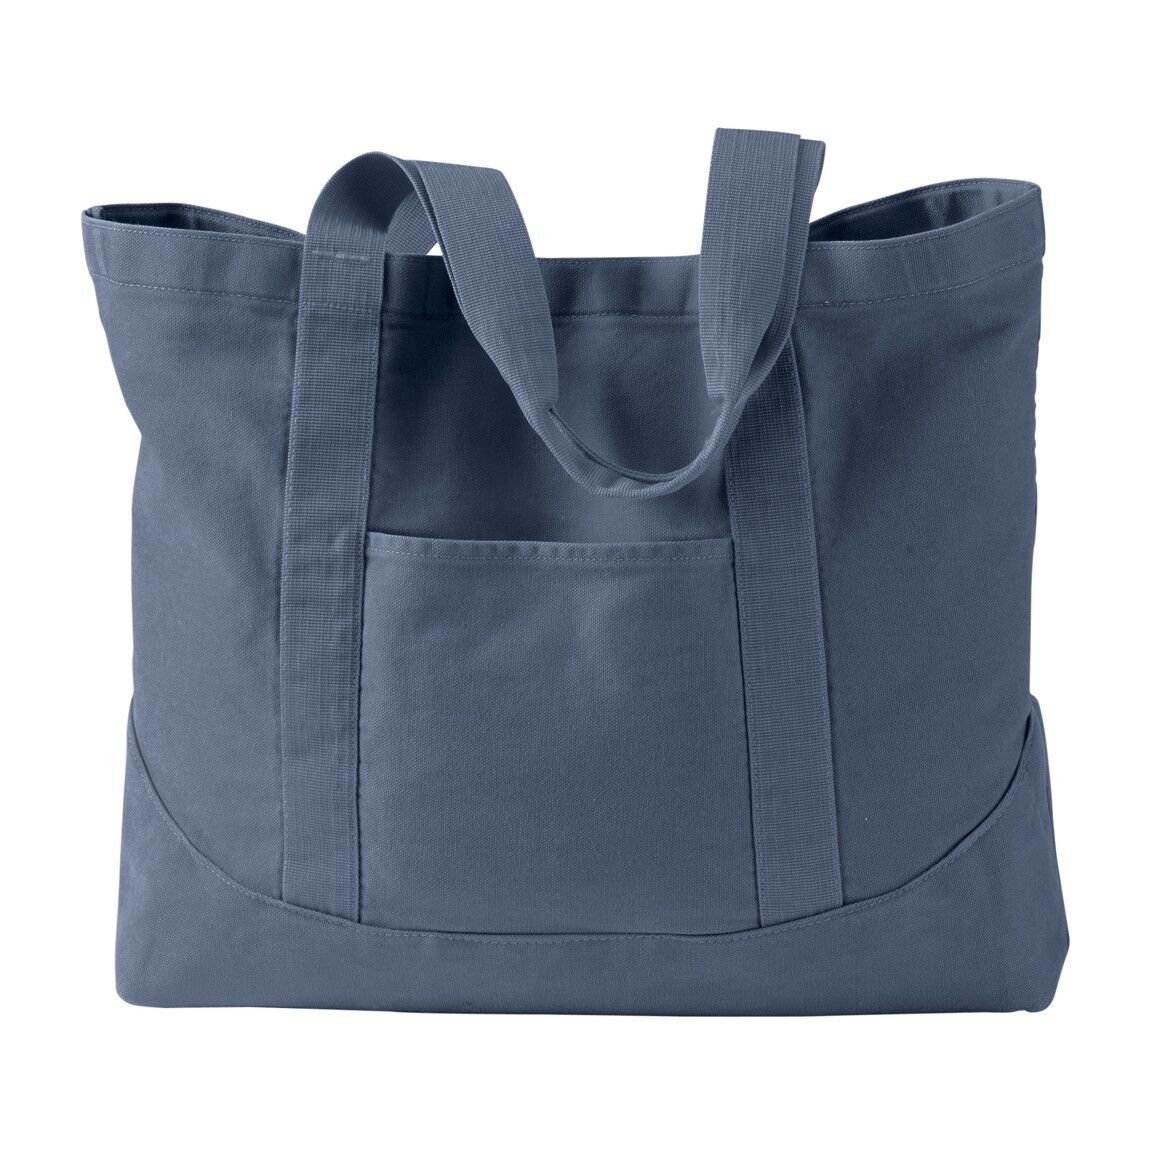 14 Oz 100 Cotton Canvas Heavy Enzyme Washed Self Fabric Handles Large Open Main Compartment With Snap Closure Inside Hanging Zippered Pocket